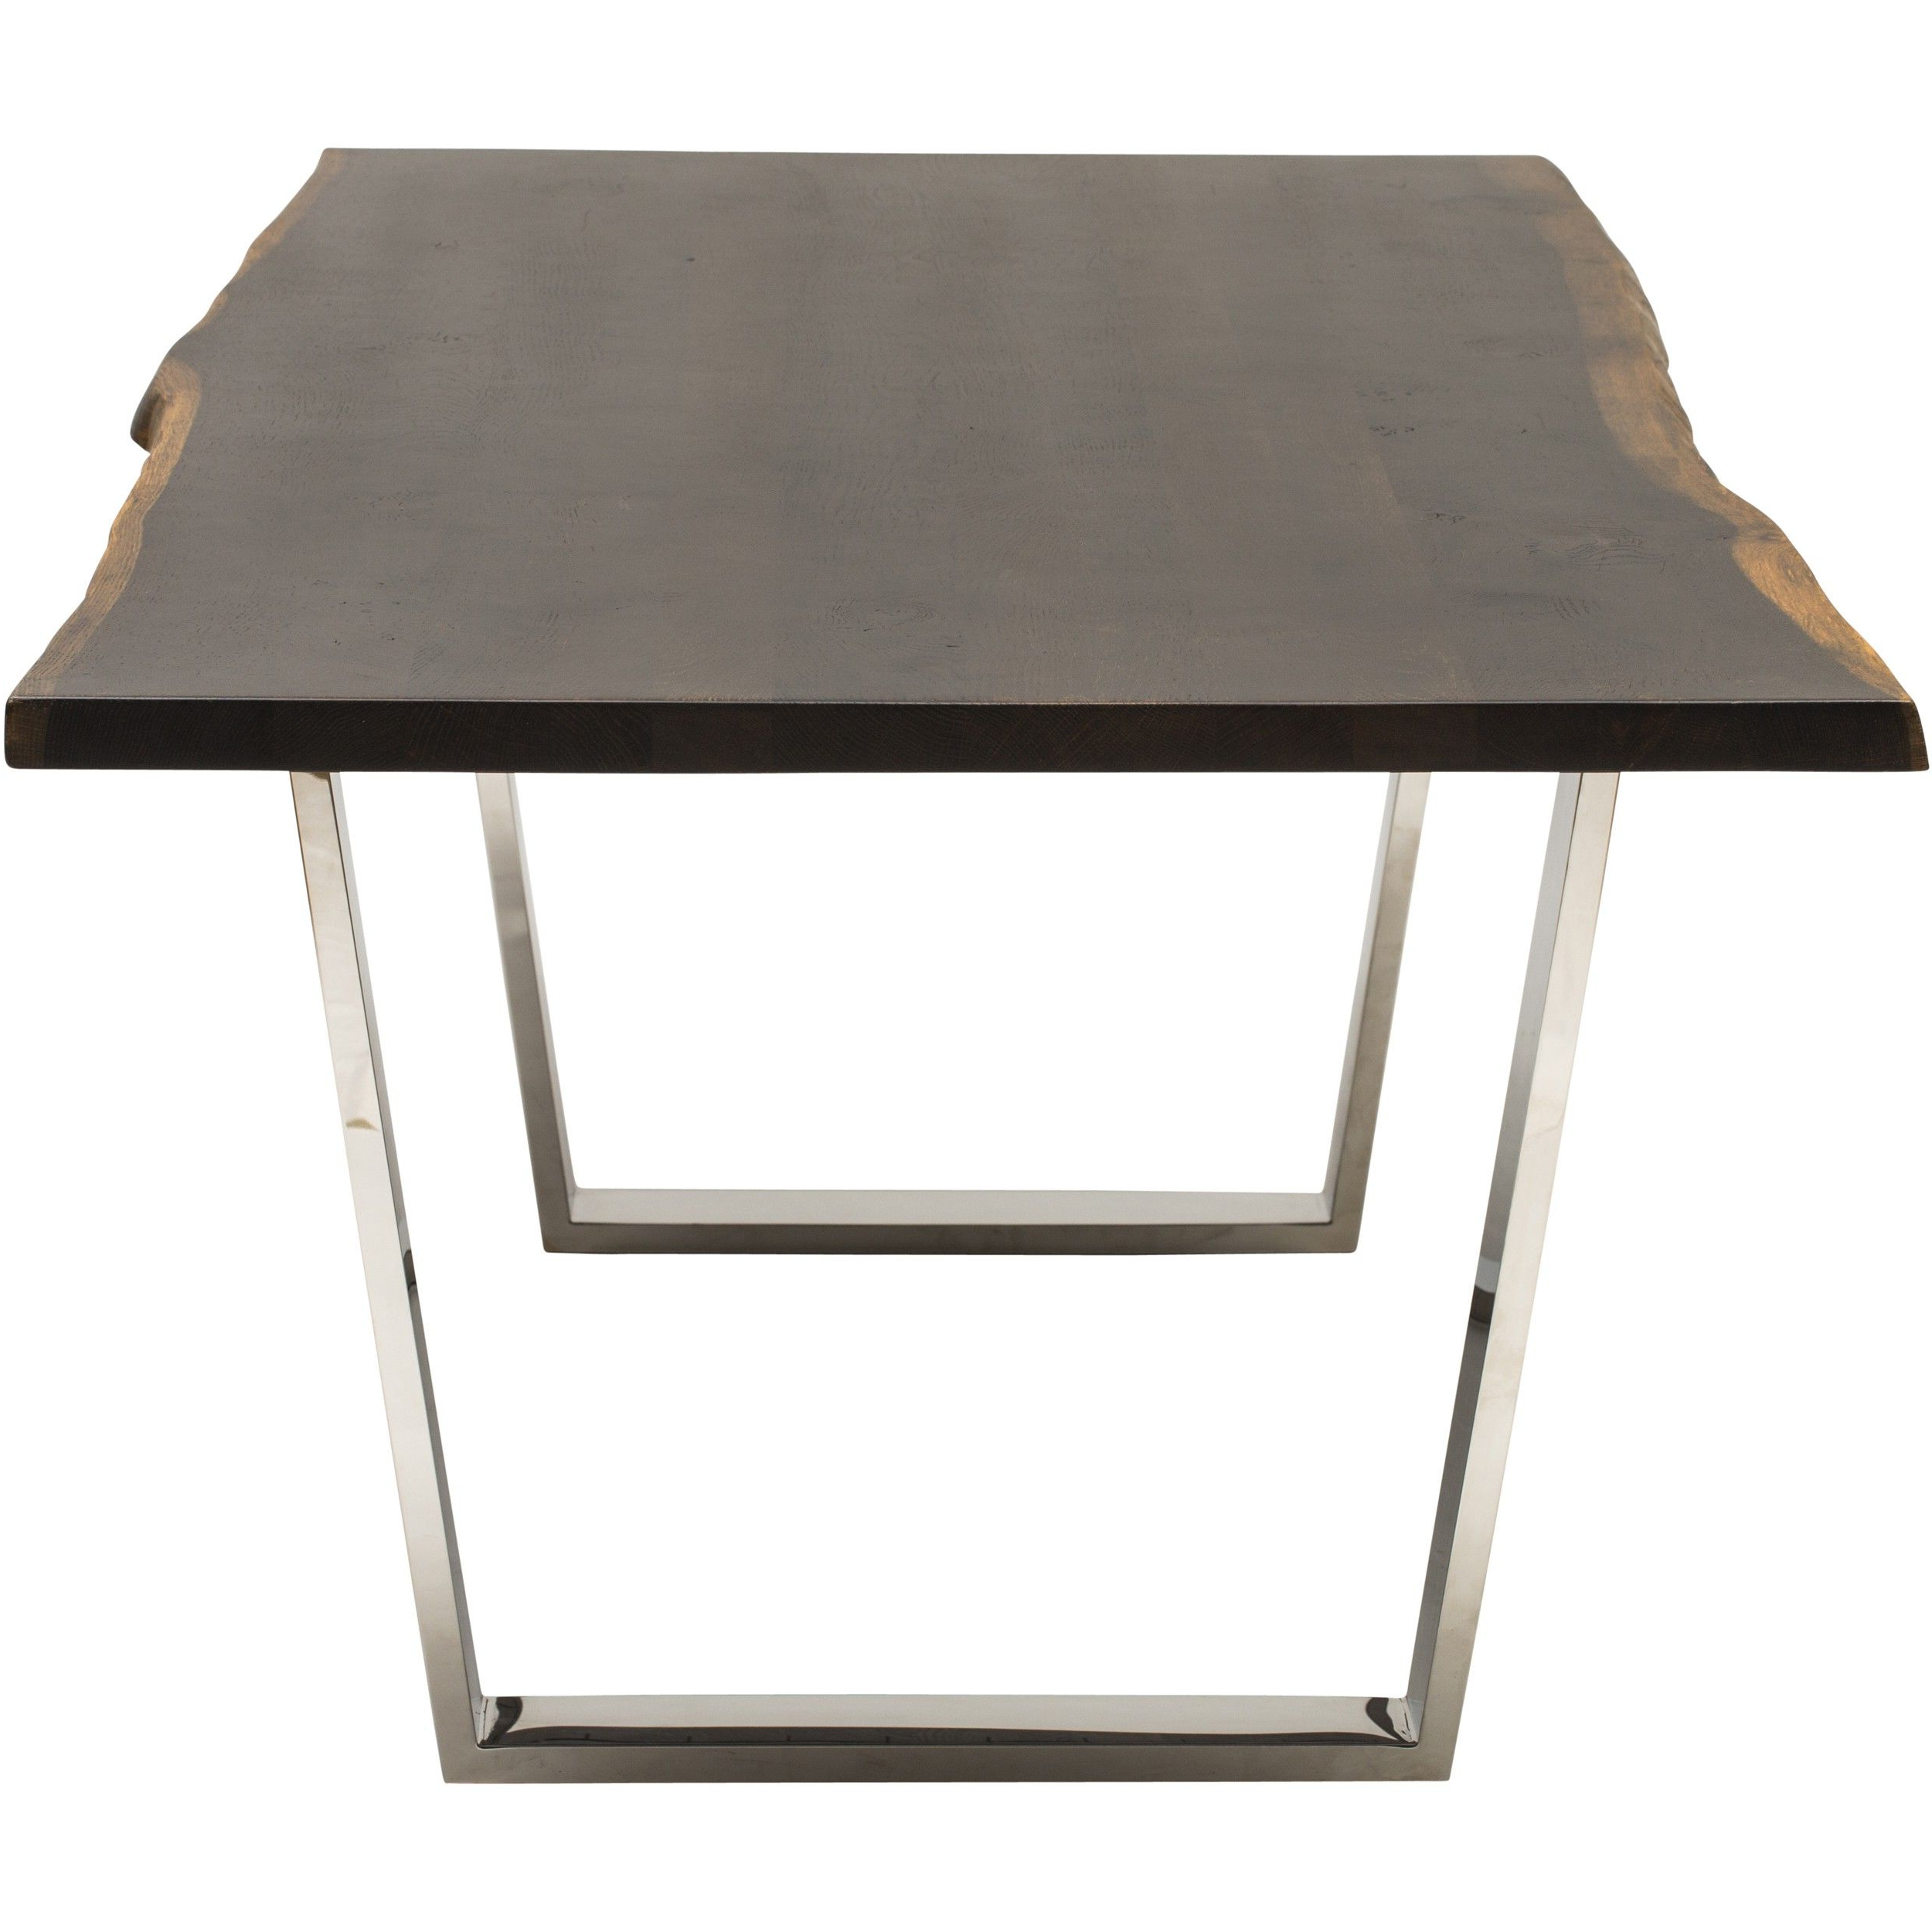 Versailles Dining Table, Seared Oak/polished Stainless Base Throughout Newest Dining Tables In Seared Oak (View 8 of 25)